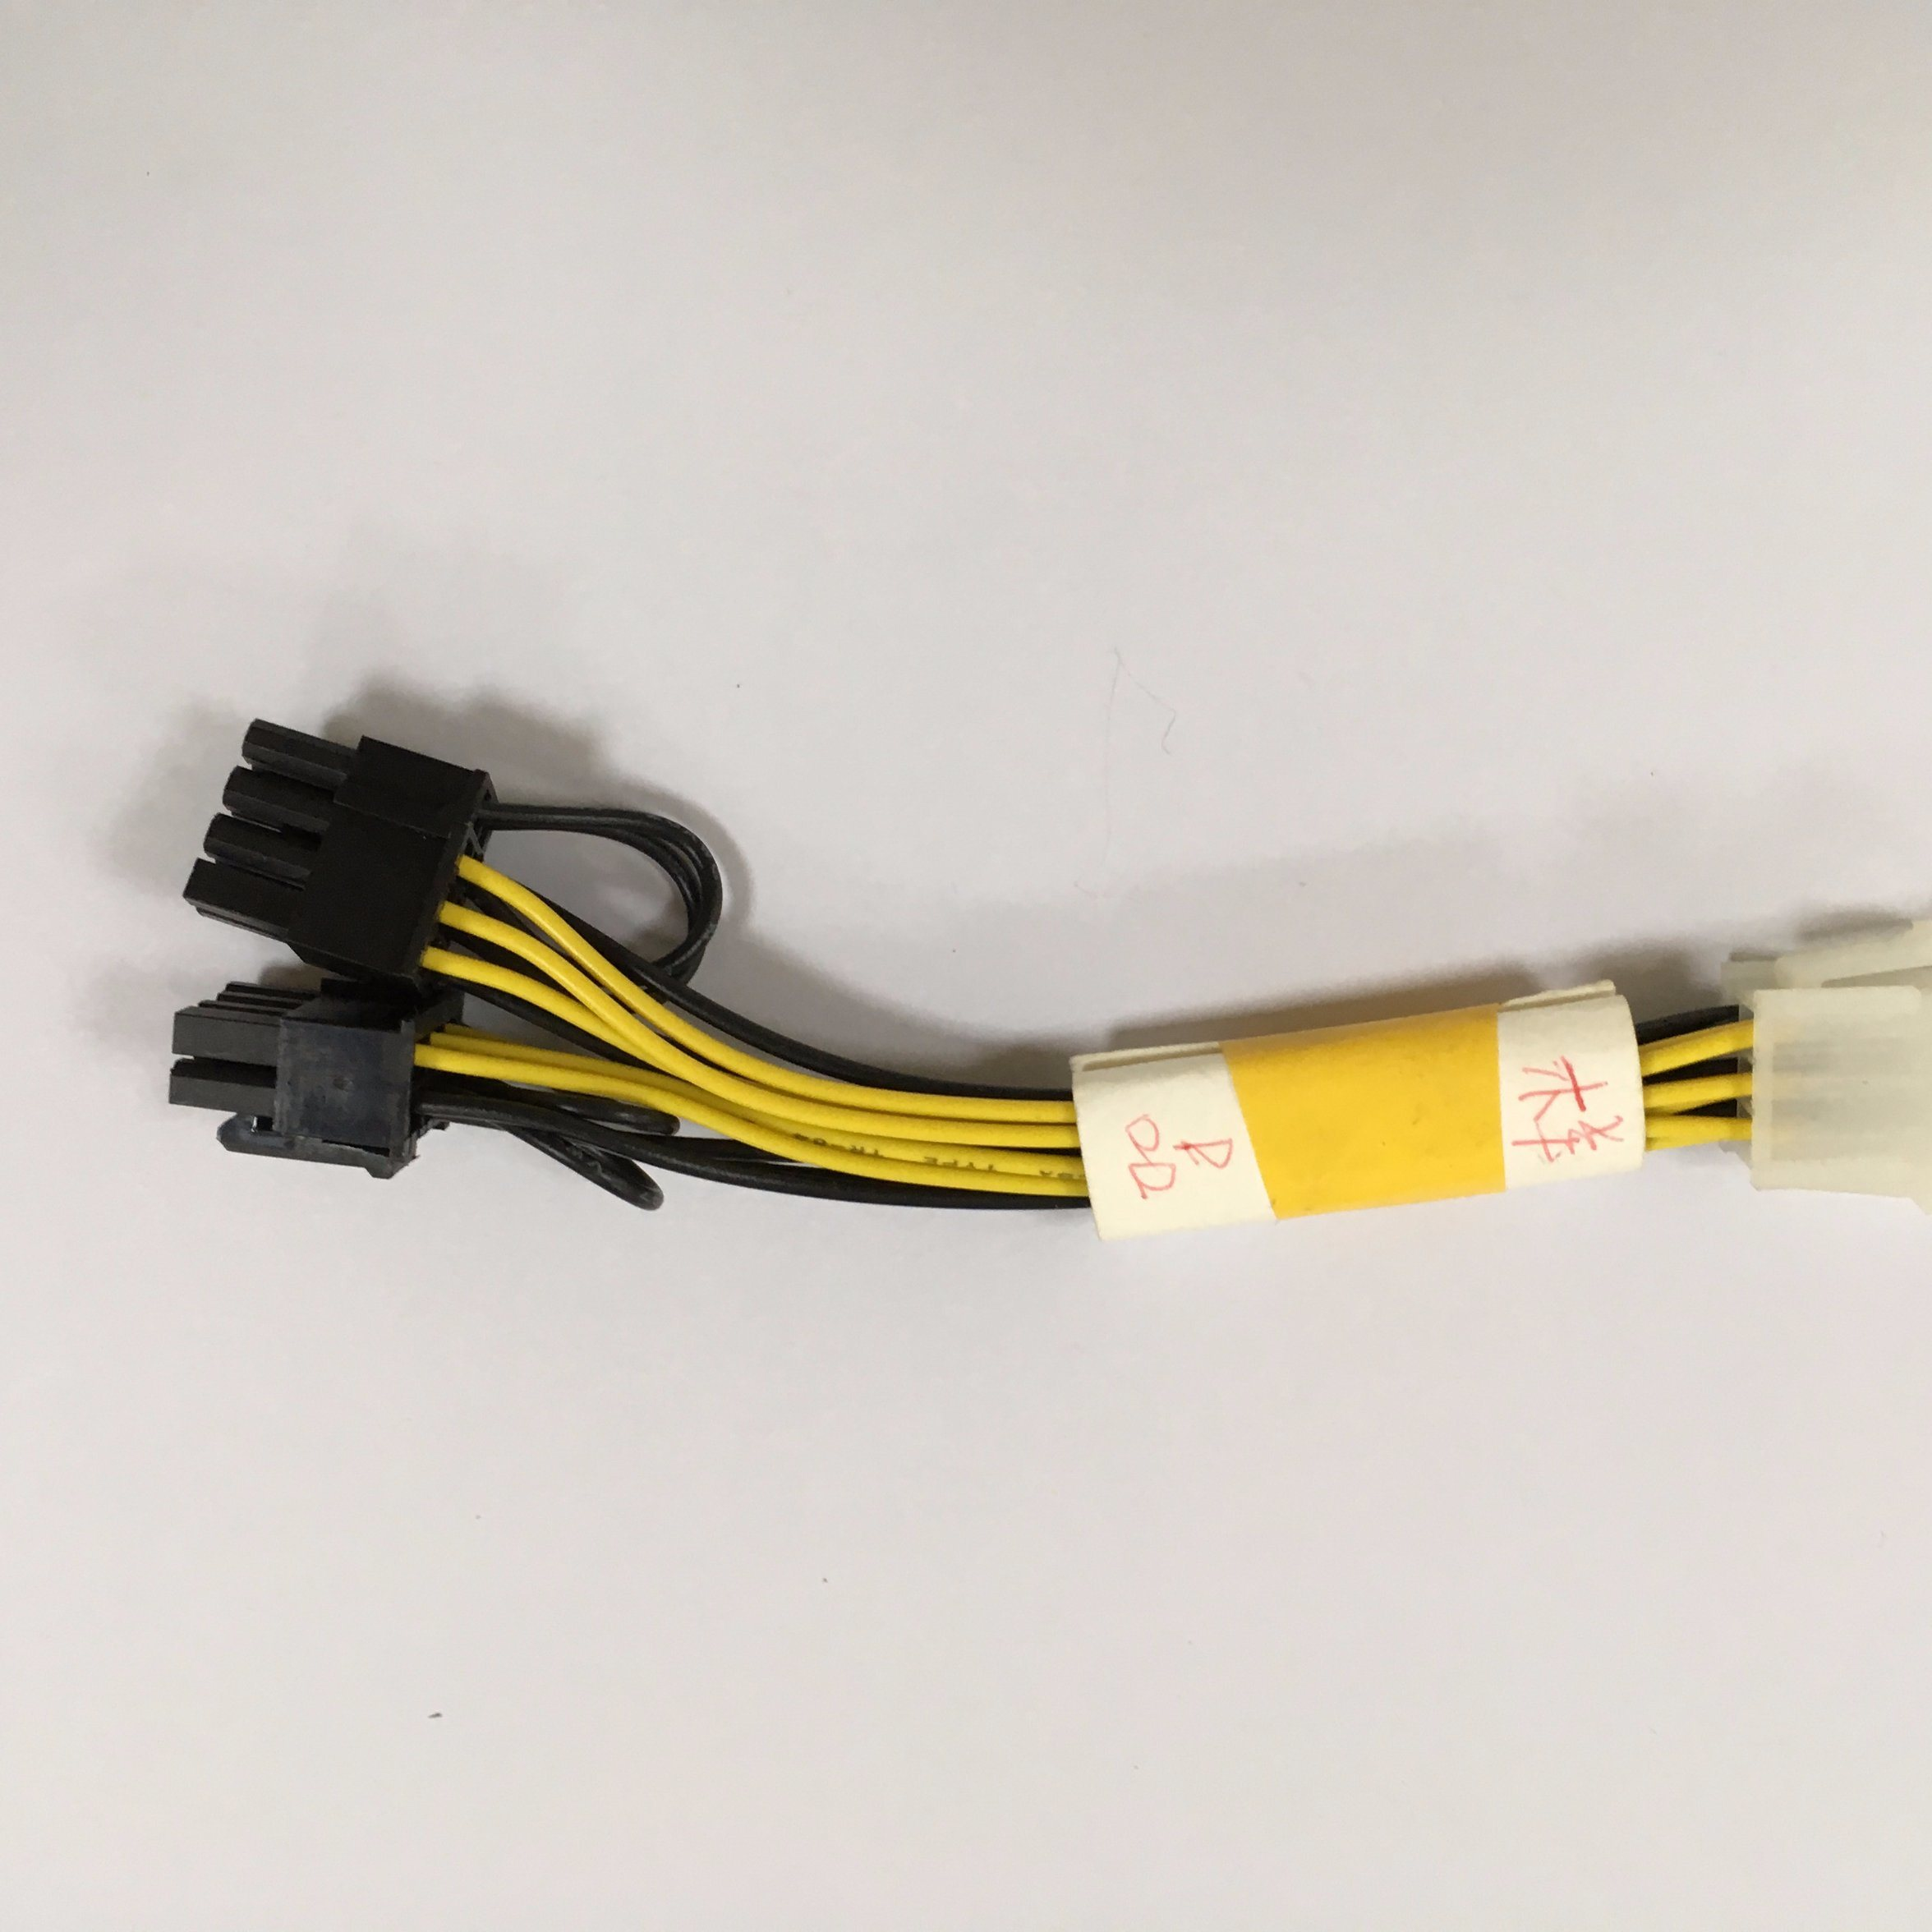 China Dual Sata 8pin To Pci E Express Card 6pin Graphics Video Wiring Power Cable 6 Pin